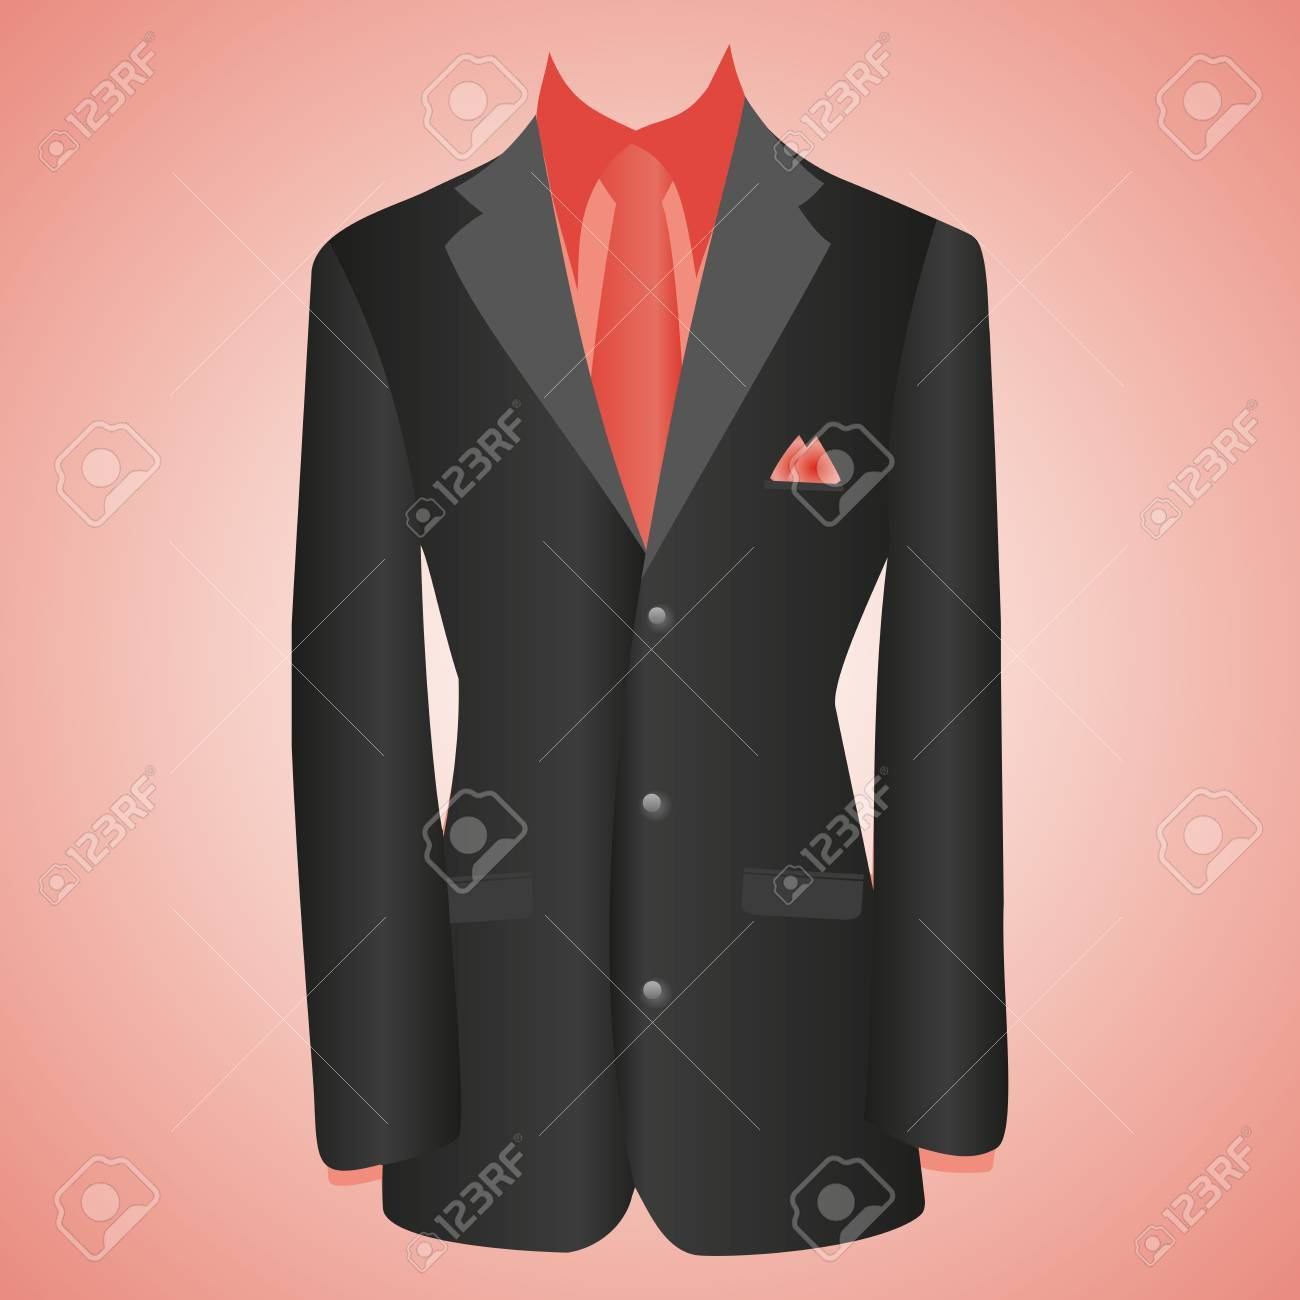 Office Dress Black Jacket Shirt Tie Suit Royalty Free Cliparts